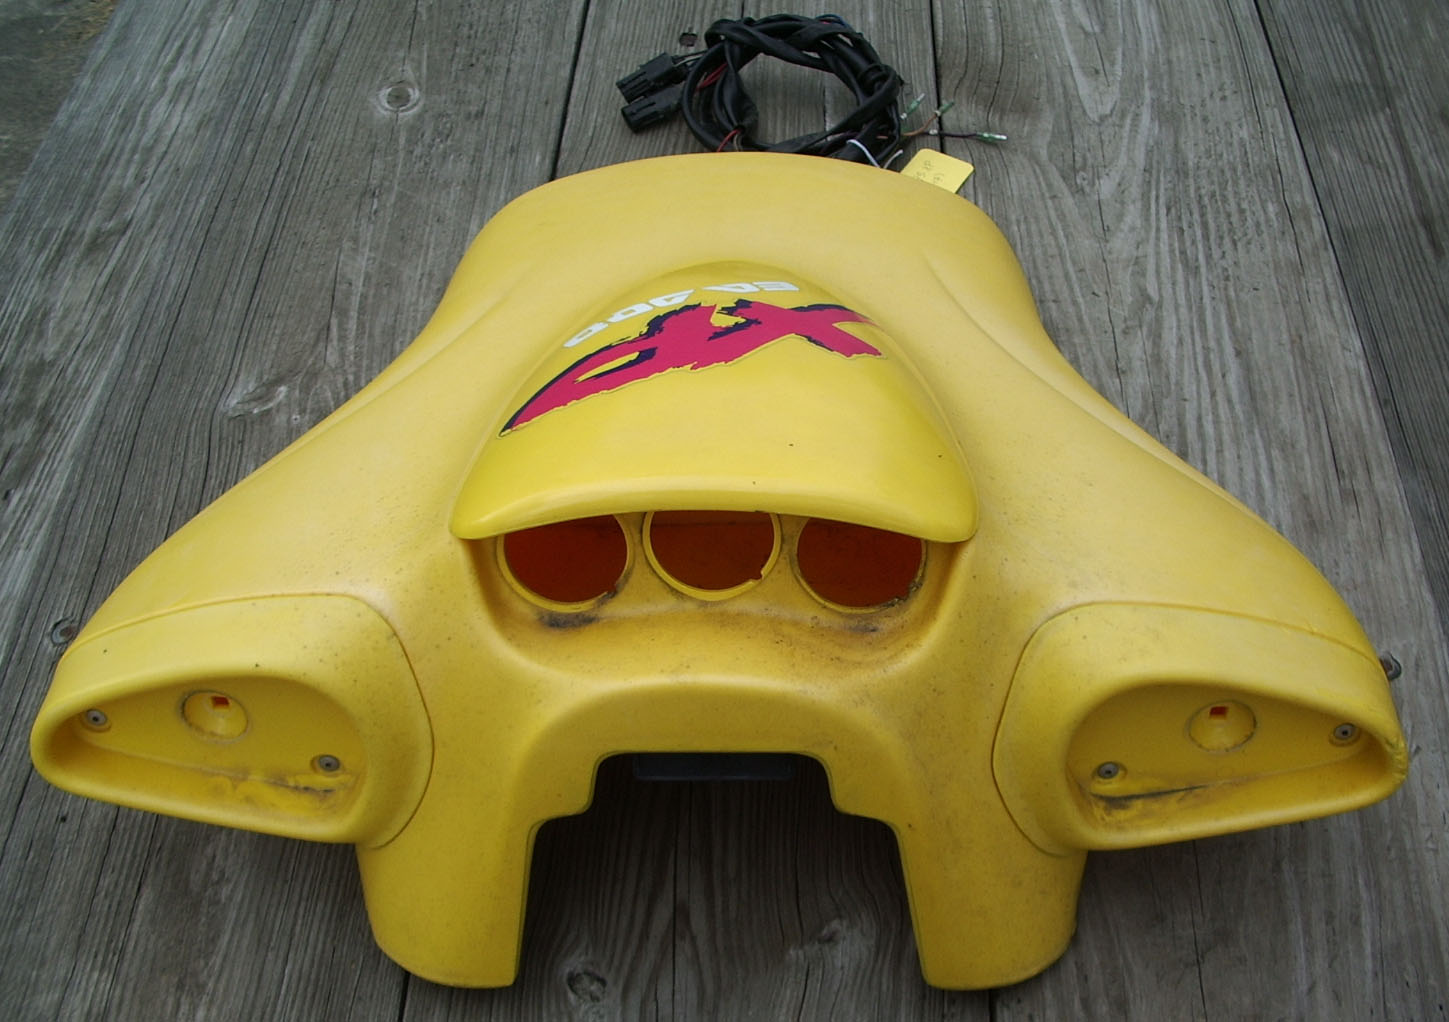 used sea doo parts for 1995 1996 xp yellow off 1995 xp